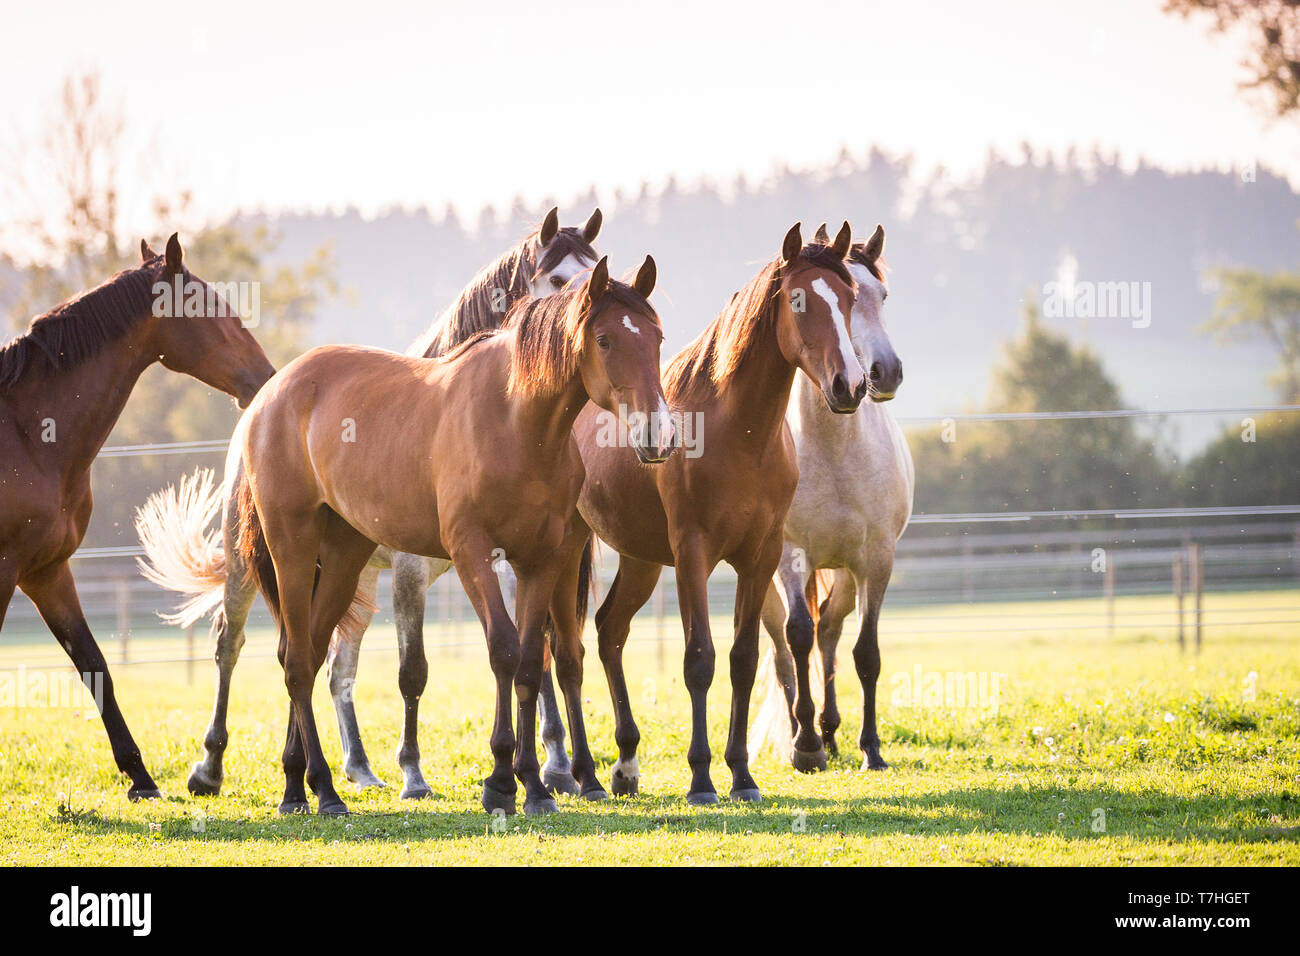 Lusitano. Juvenile mares standing on a pasture. Germany - Stock Image